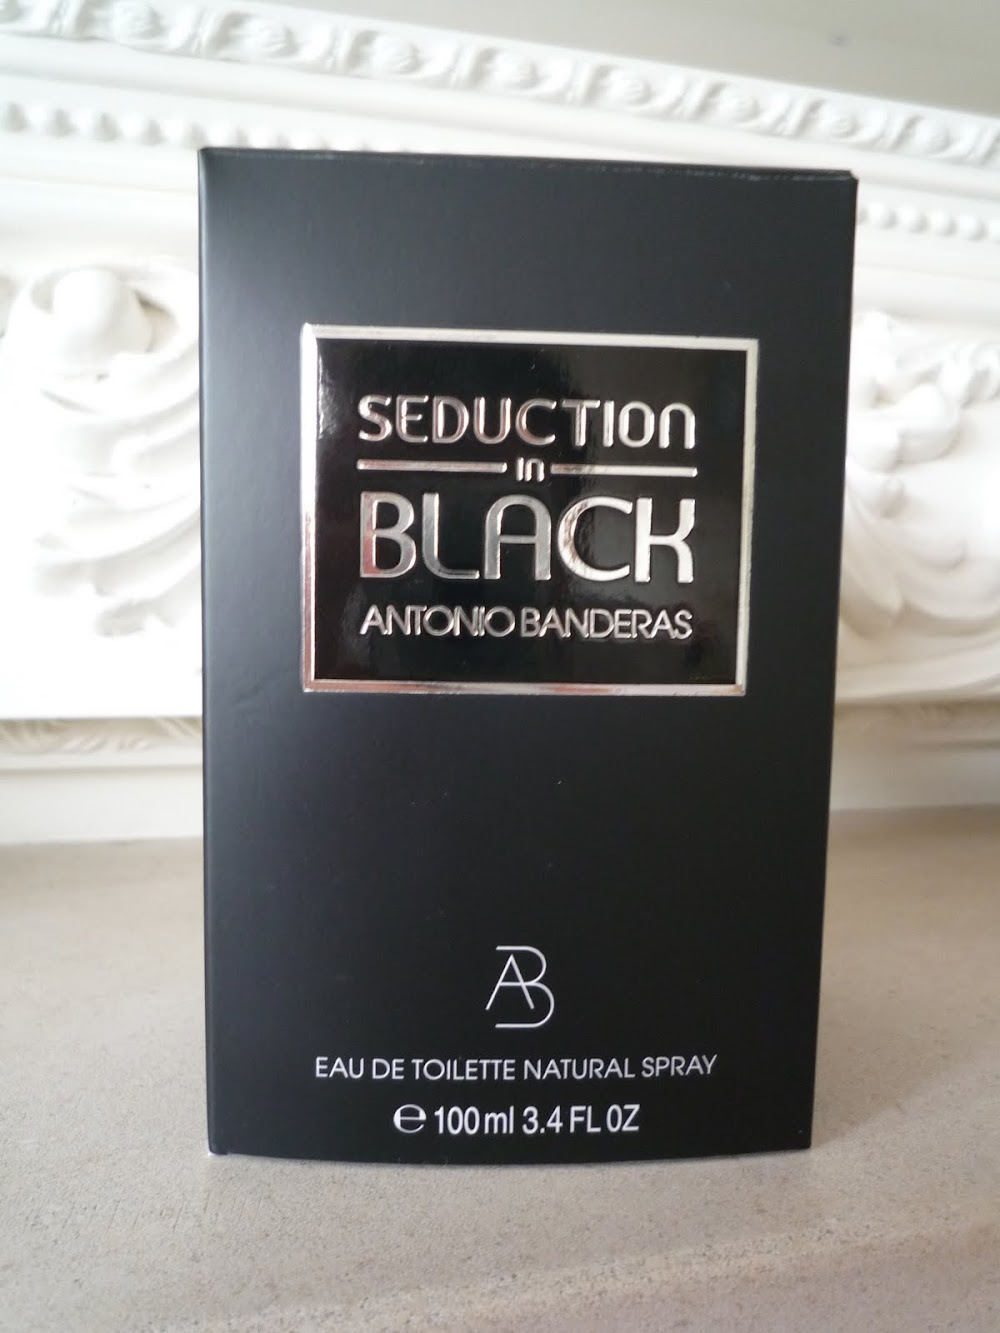 Fifi Men's Popular Appeal [Seduction in Black by Antonio Banderas]